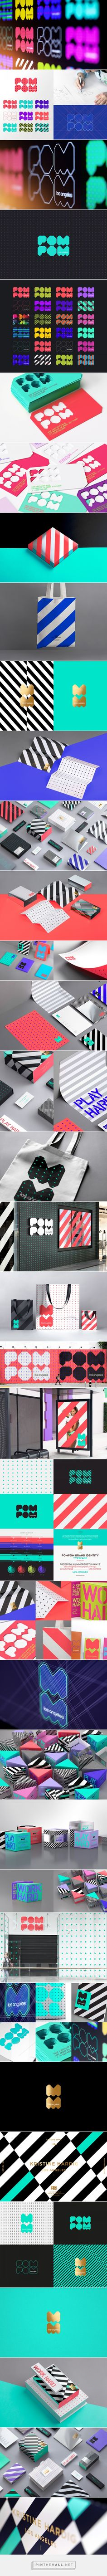 POM POM - Brand Identity on Behance... - a grouped images picture - Pin Them All